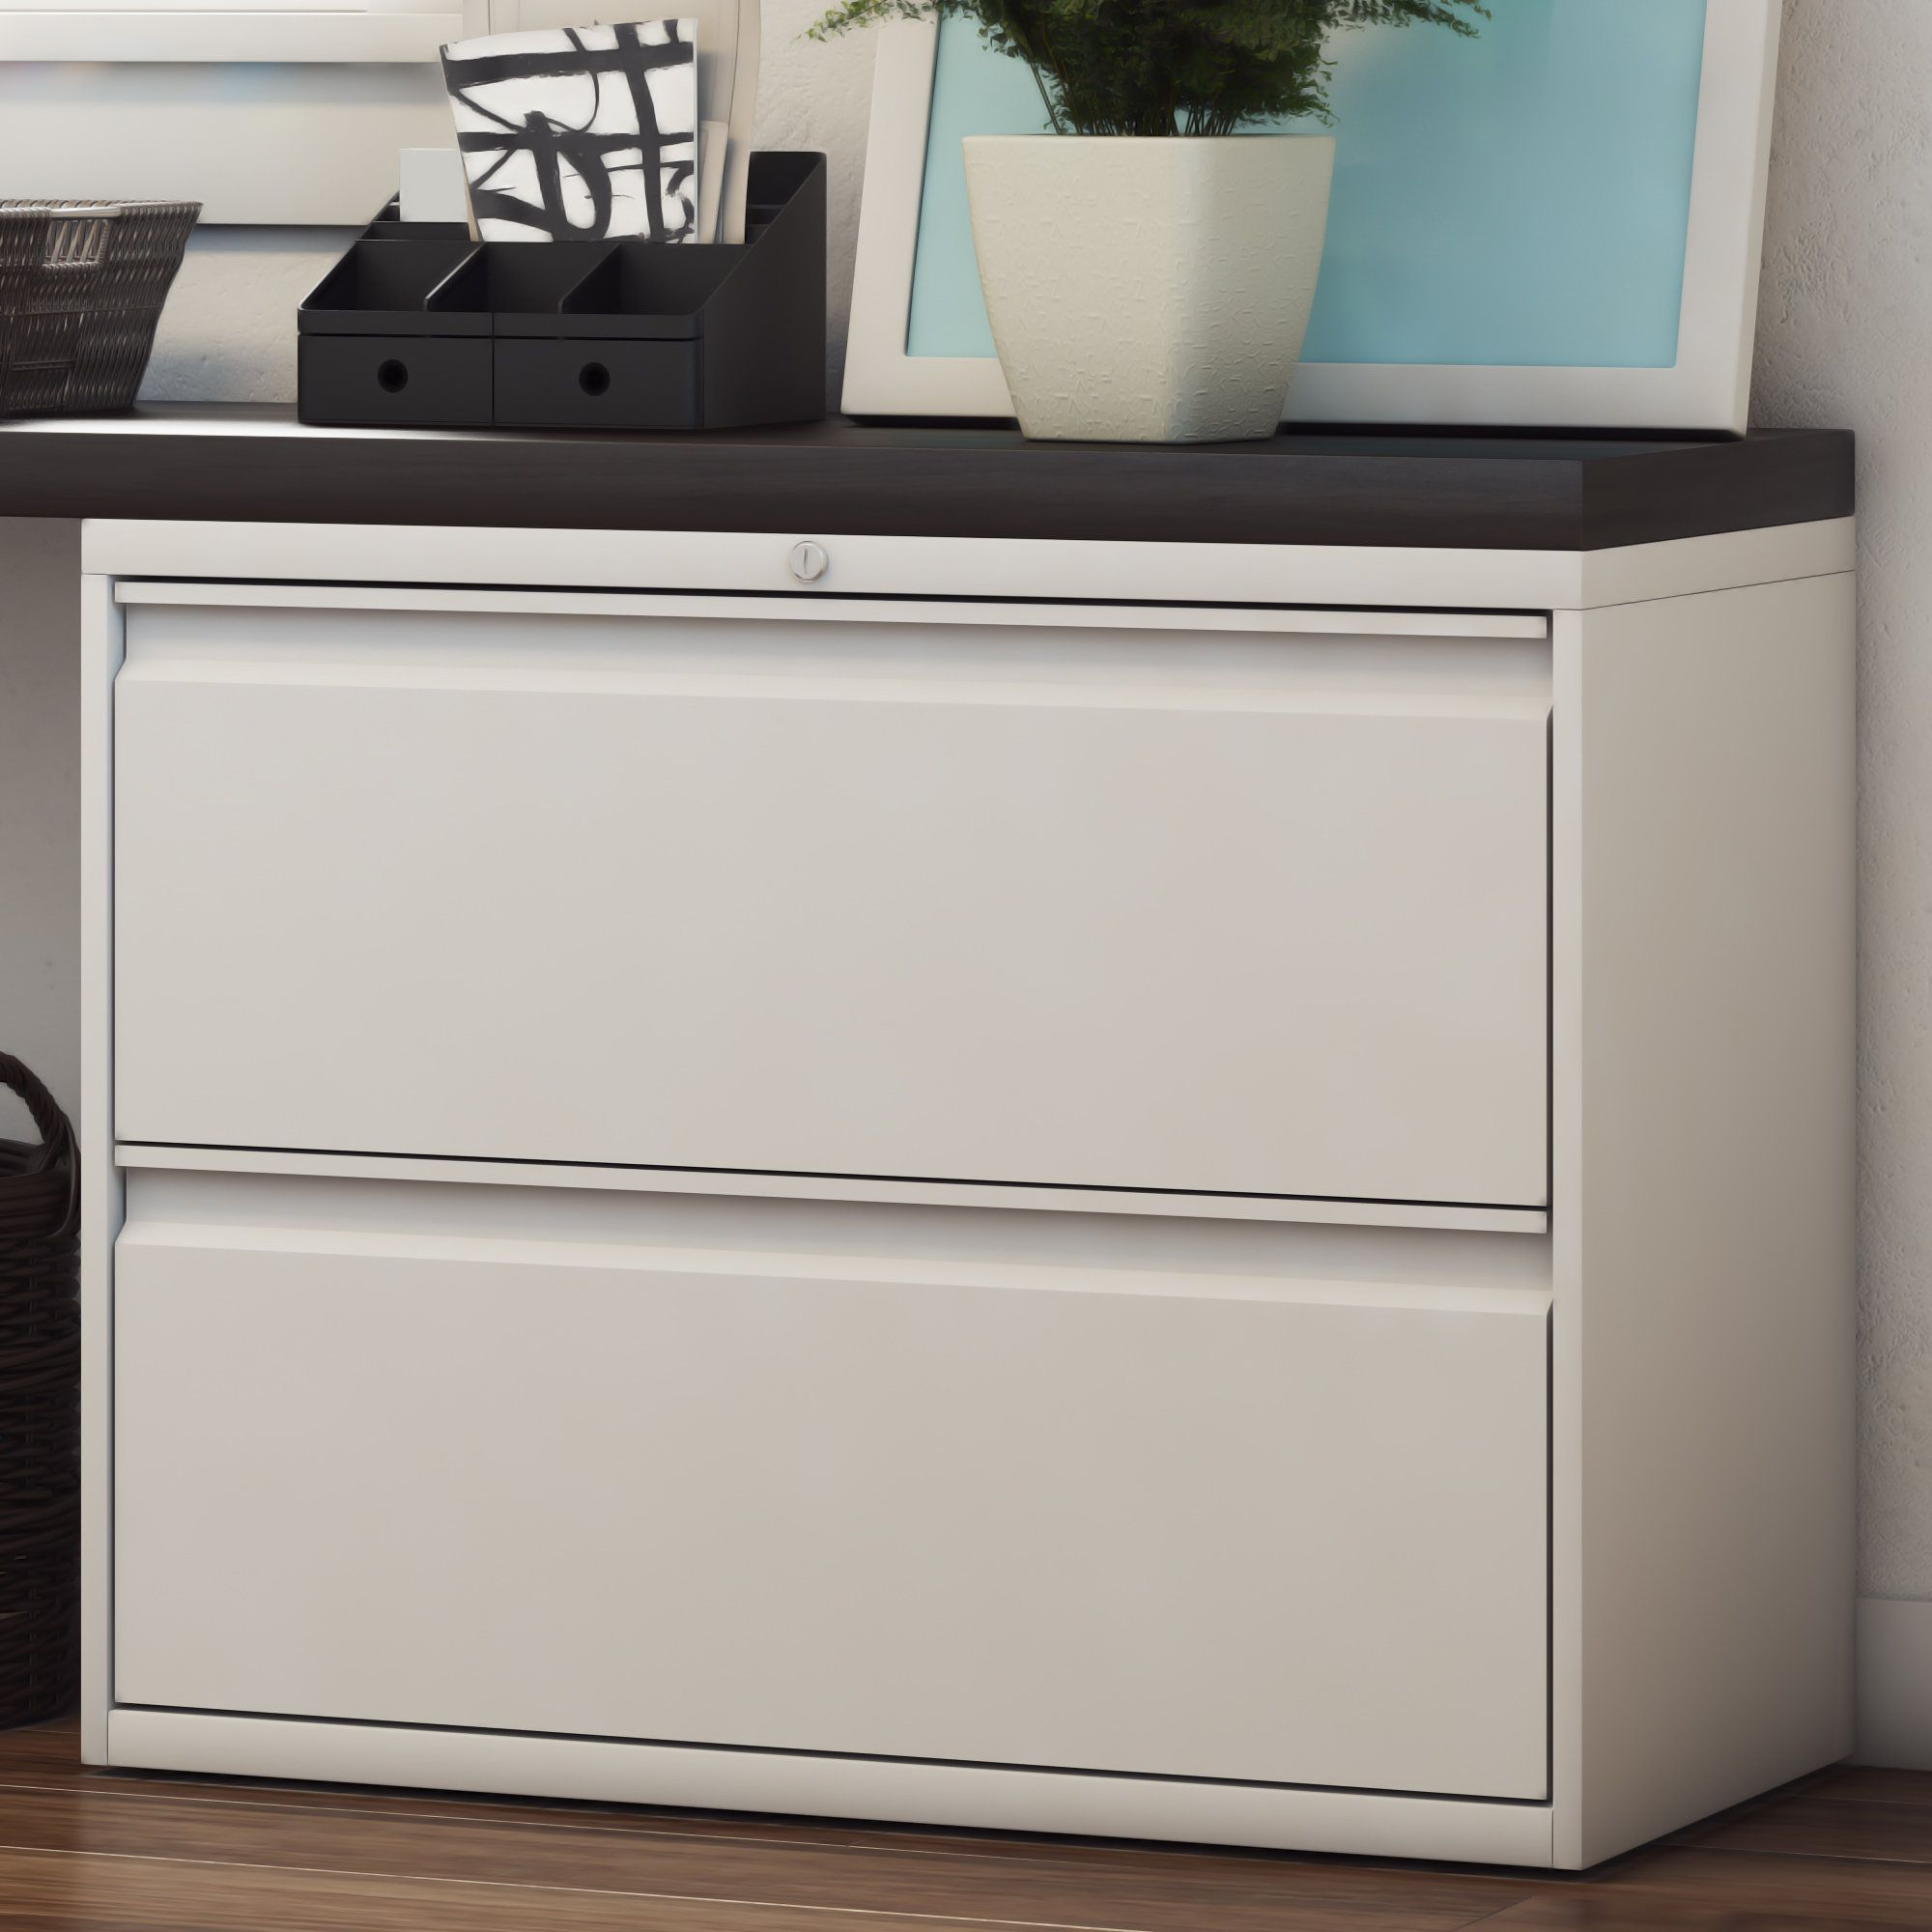 2 Drawer Lateral Filing Cabinet Products Pinterest